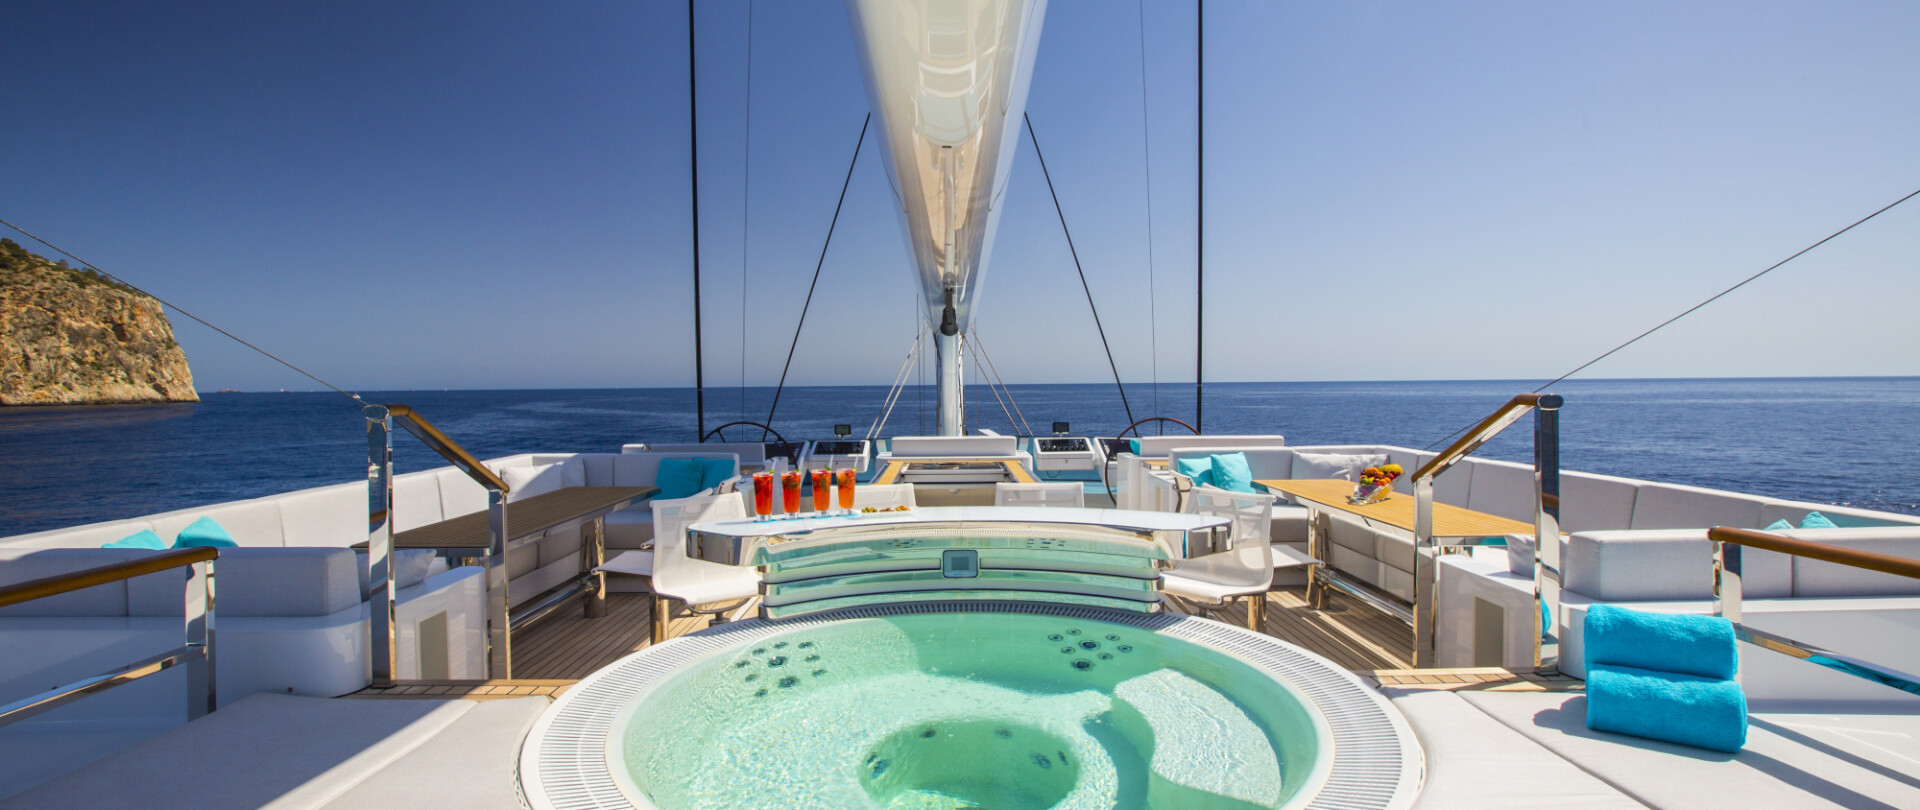 Best sailing yachts available to charter in the Mediterranean photo 1